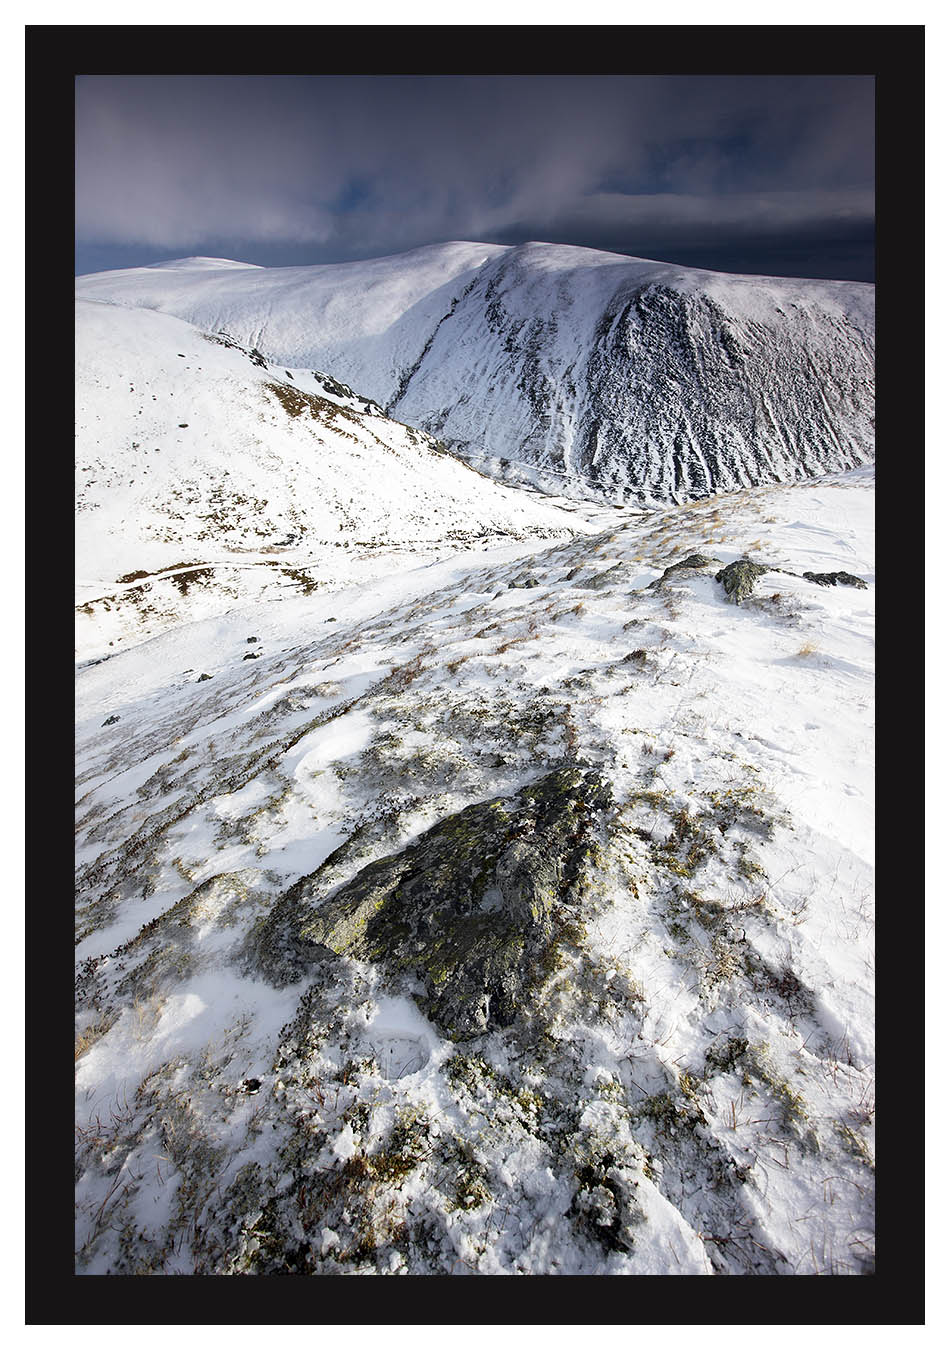 46E1994 Bowscale Fell and Bannerdale Crags from Scales Fell Blencathra